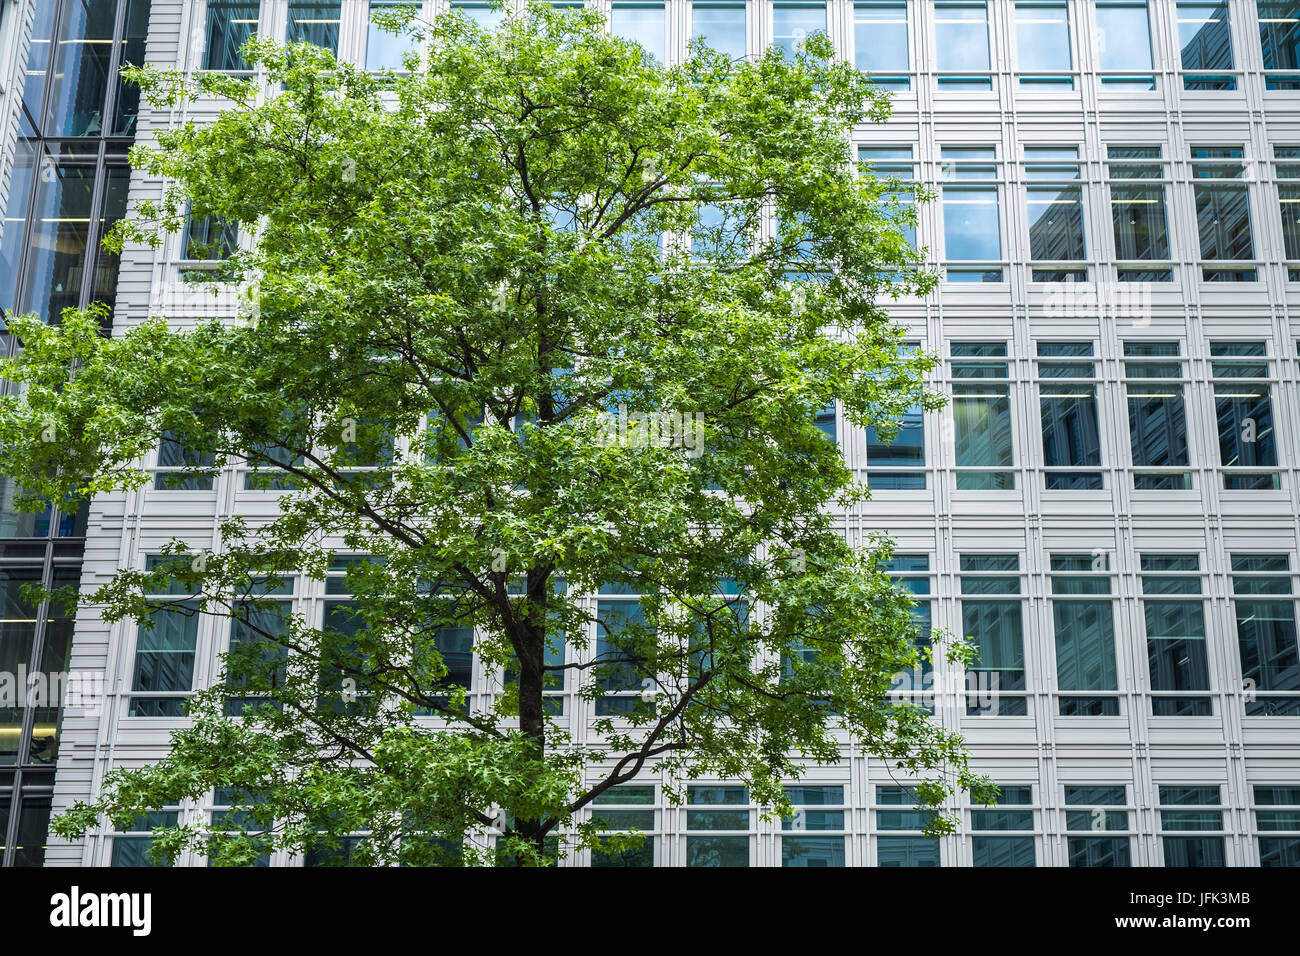 Modern office building with a verdant tree in front on a spring day - Stock Image